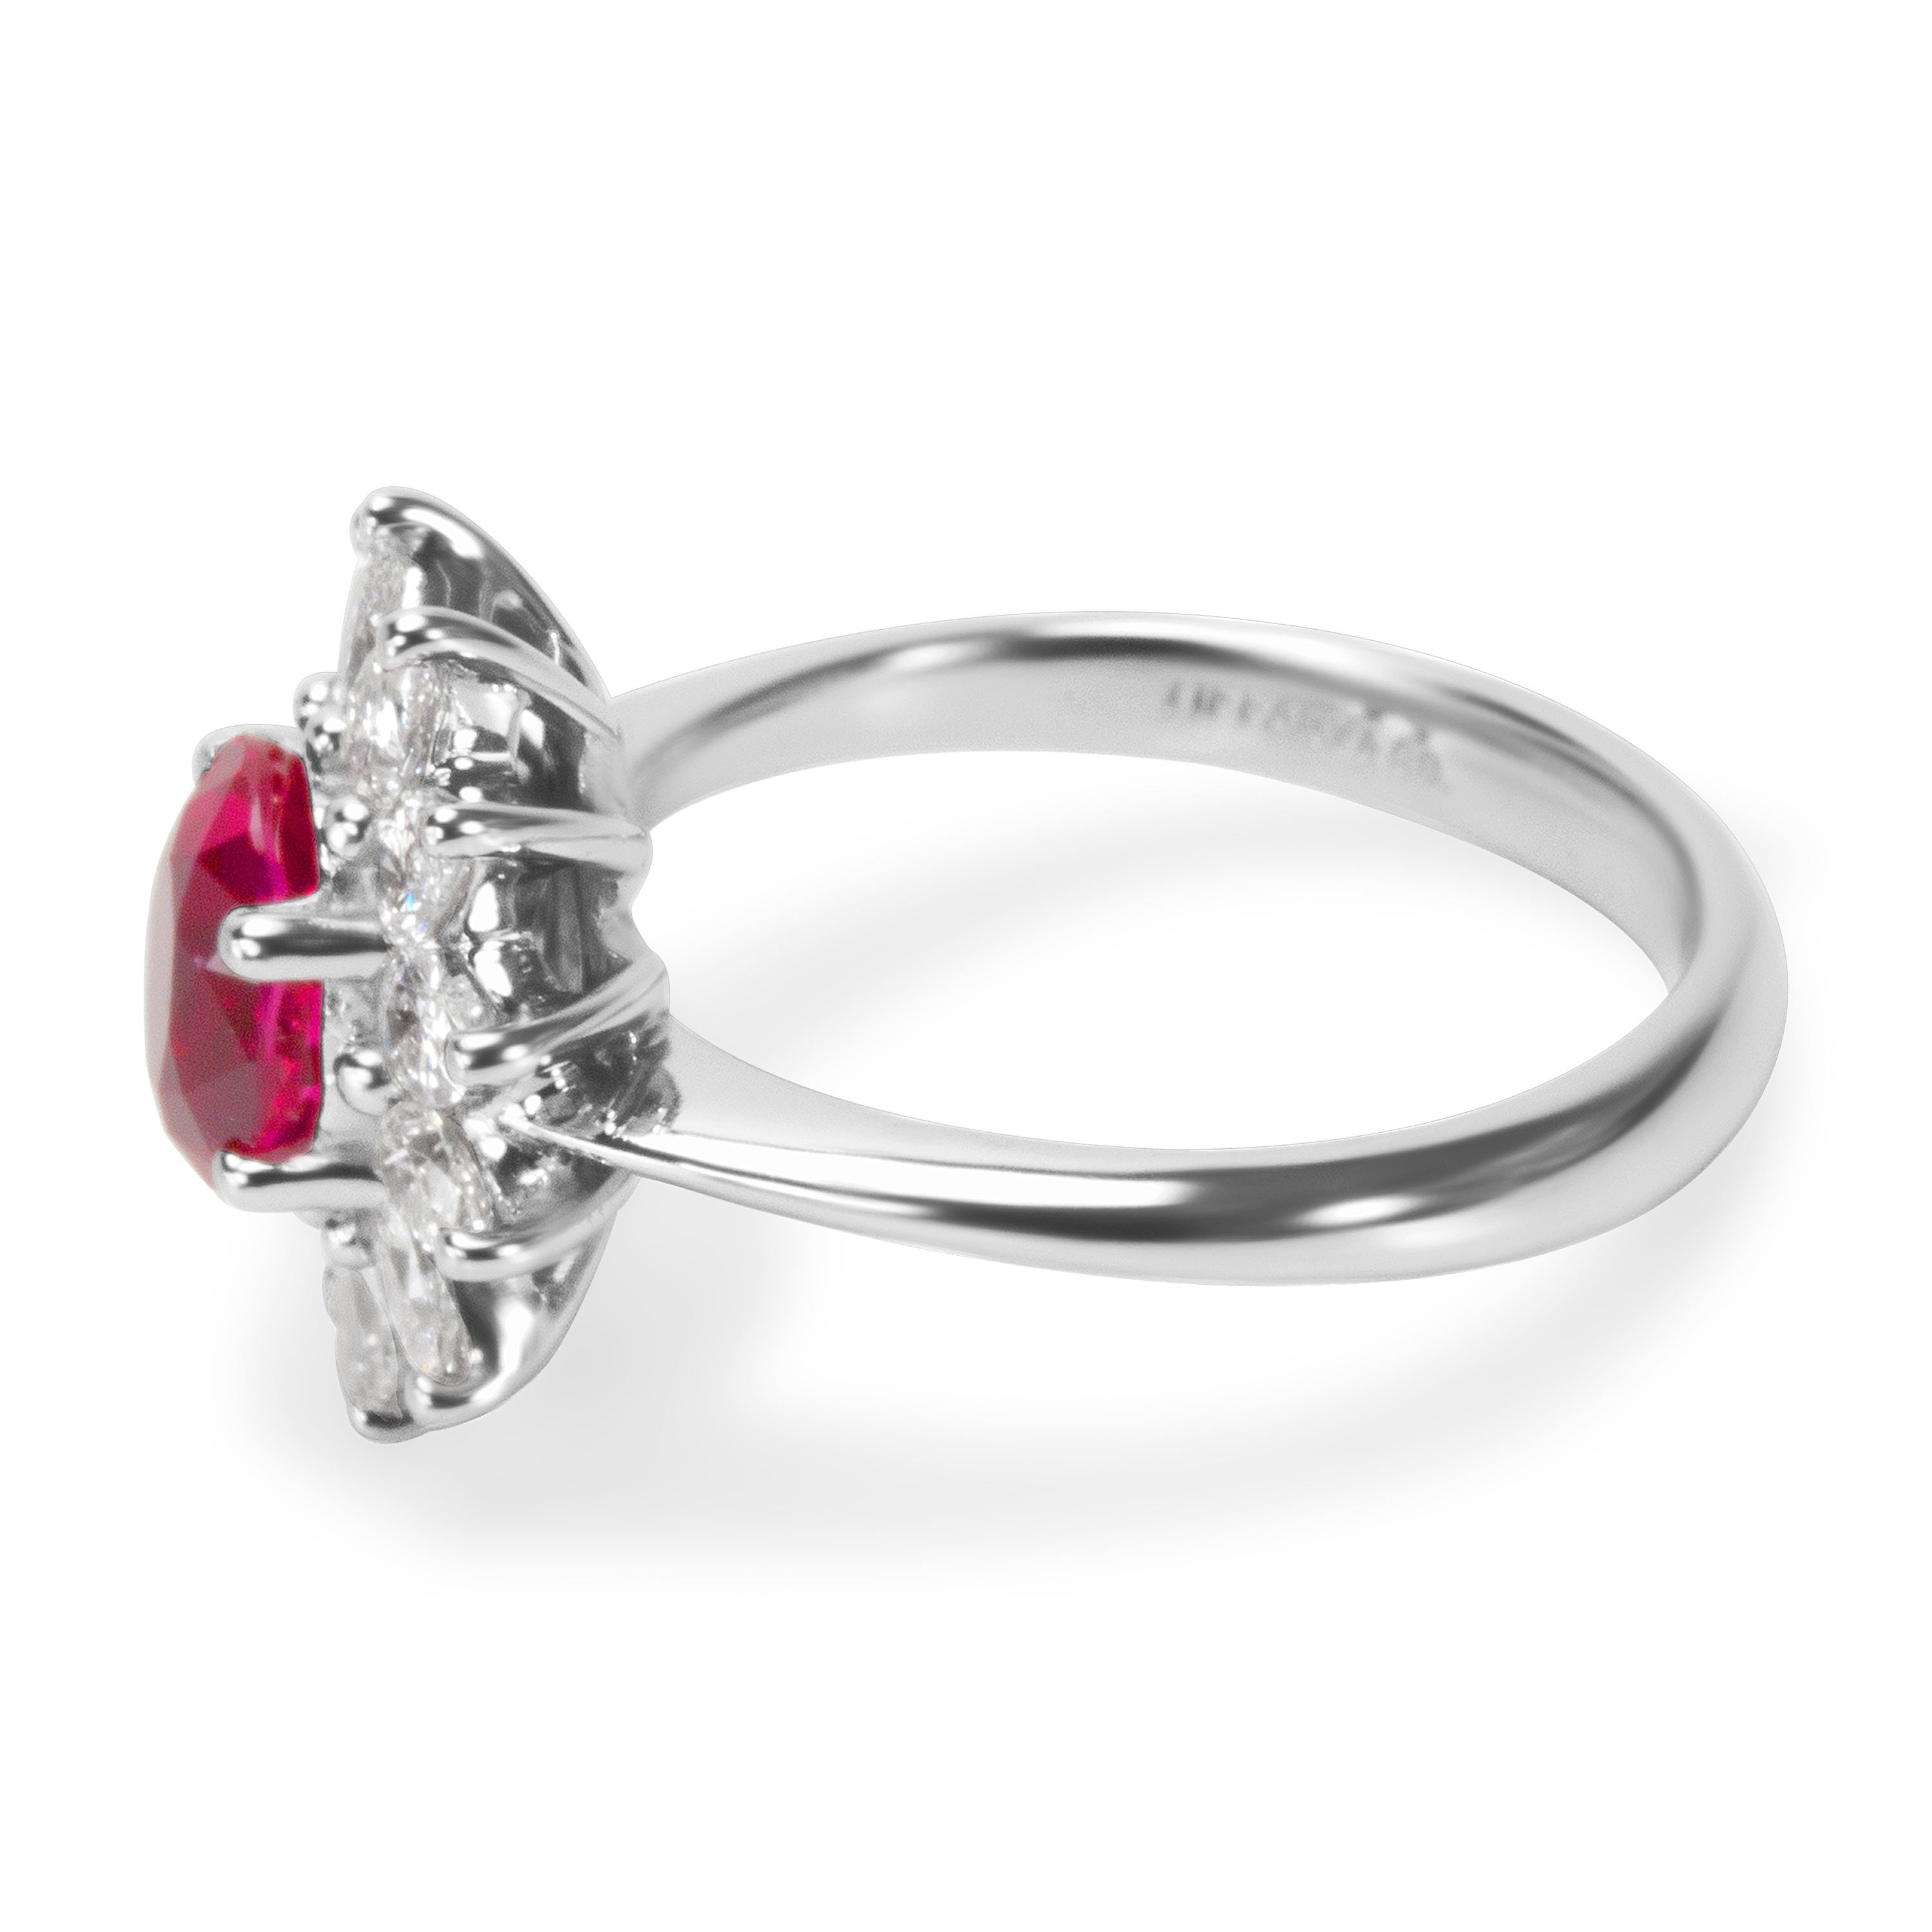 a95b242bc Shop Pre-Owned Tiffany & Co GIA Certified Burmese Ruby & Diamond Ring in  Platinum 2.13 ctw - Free Shipping Today - Overstock - 23056037